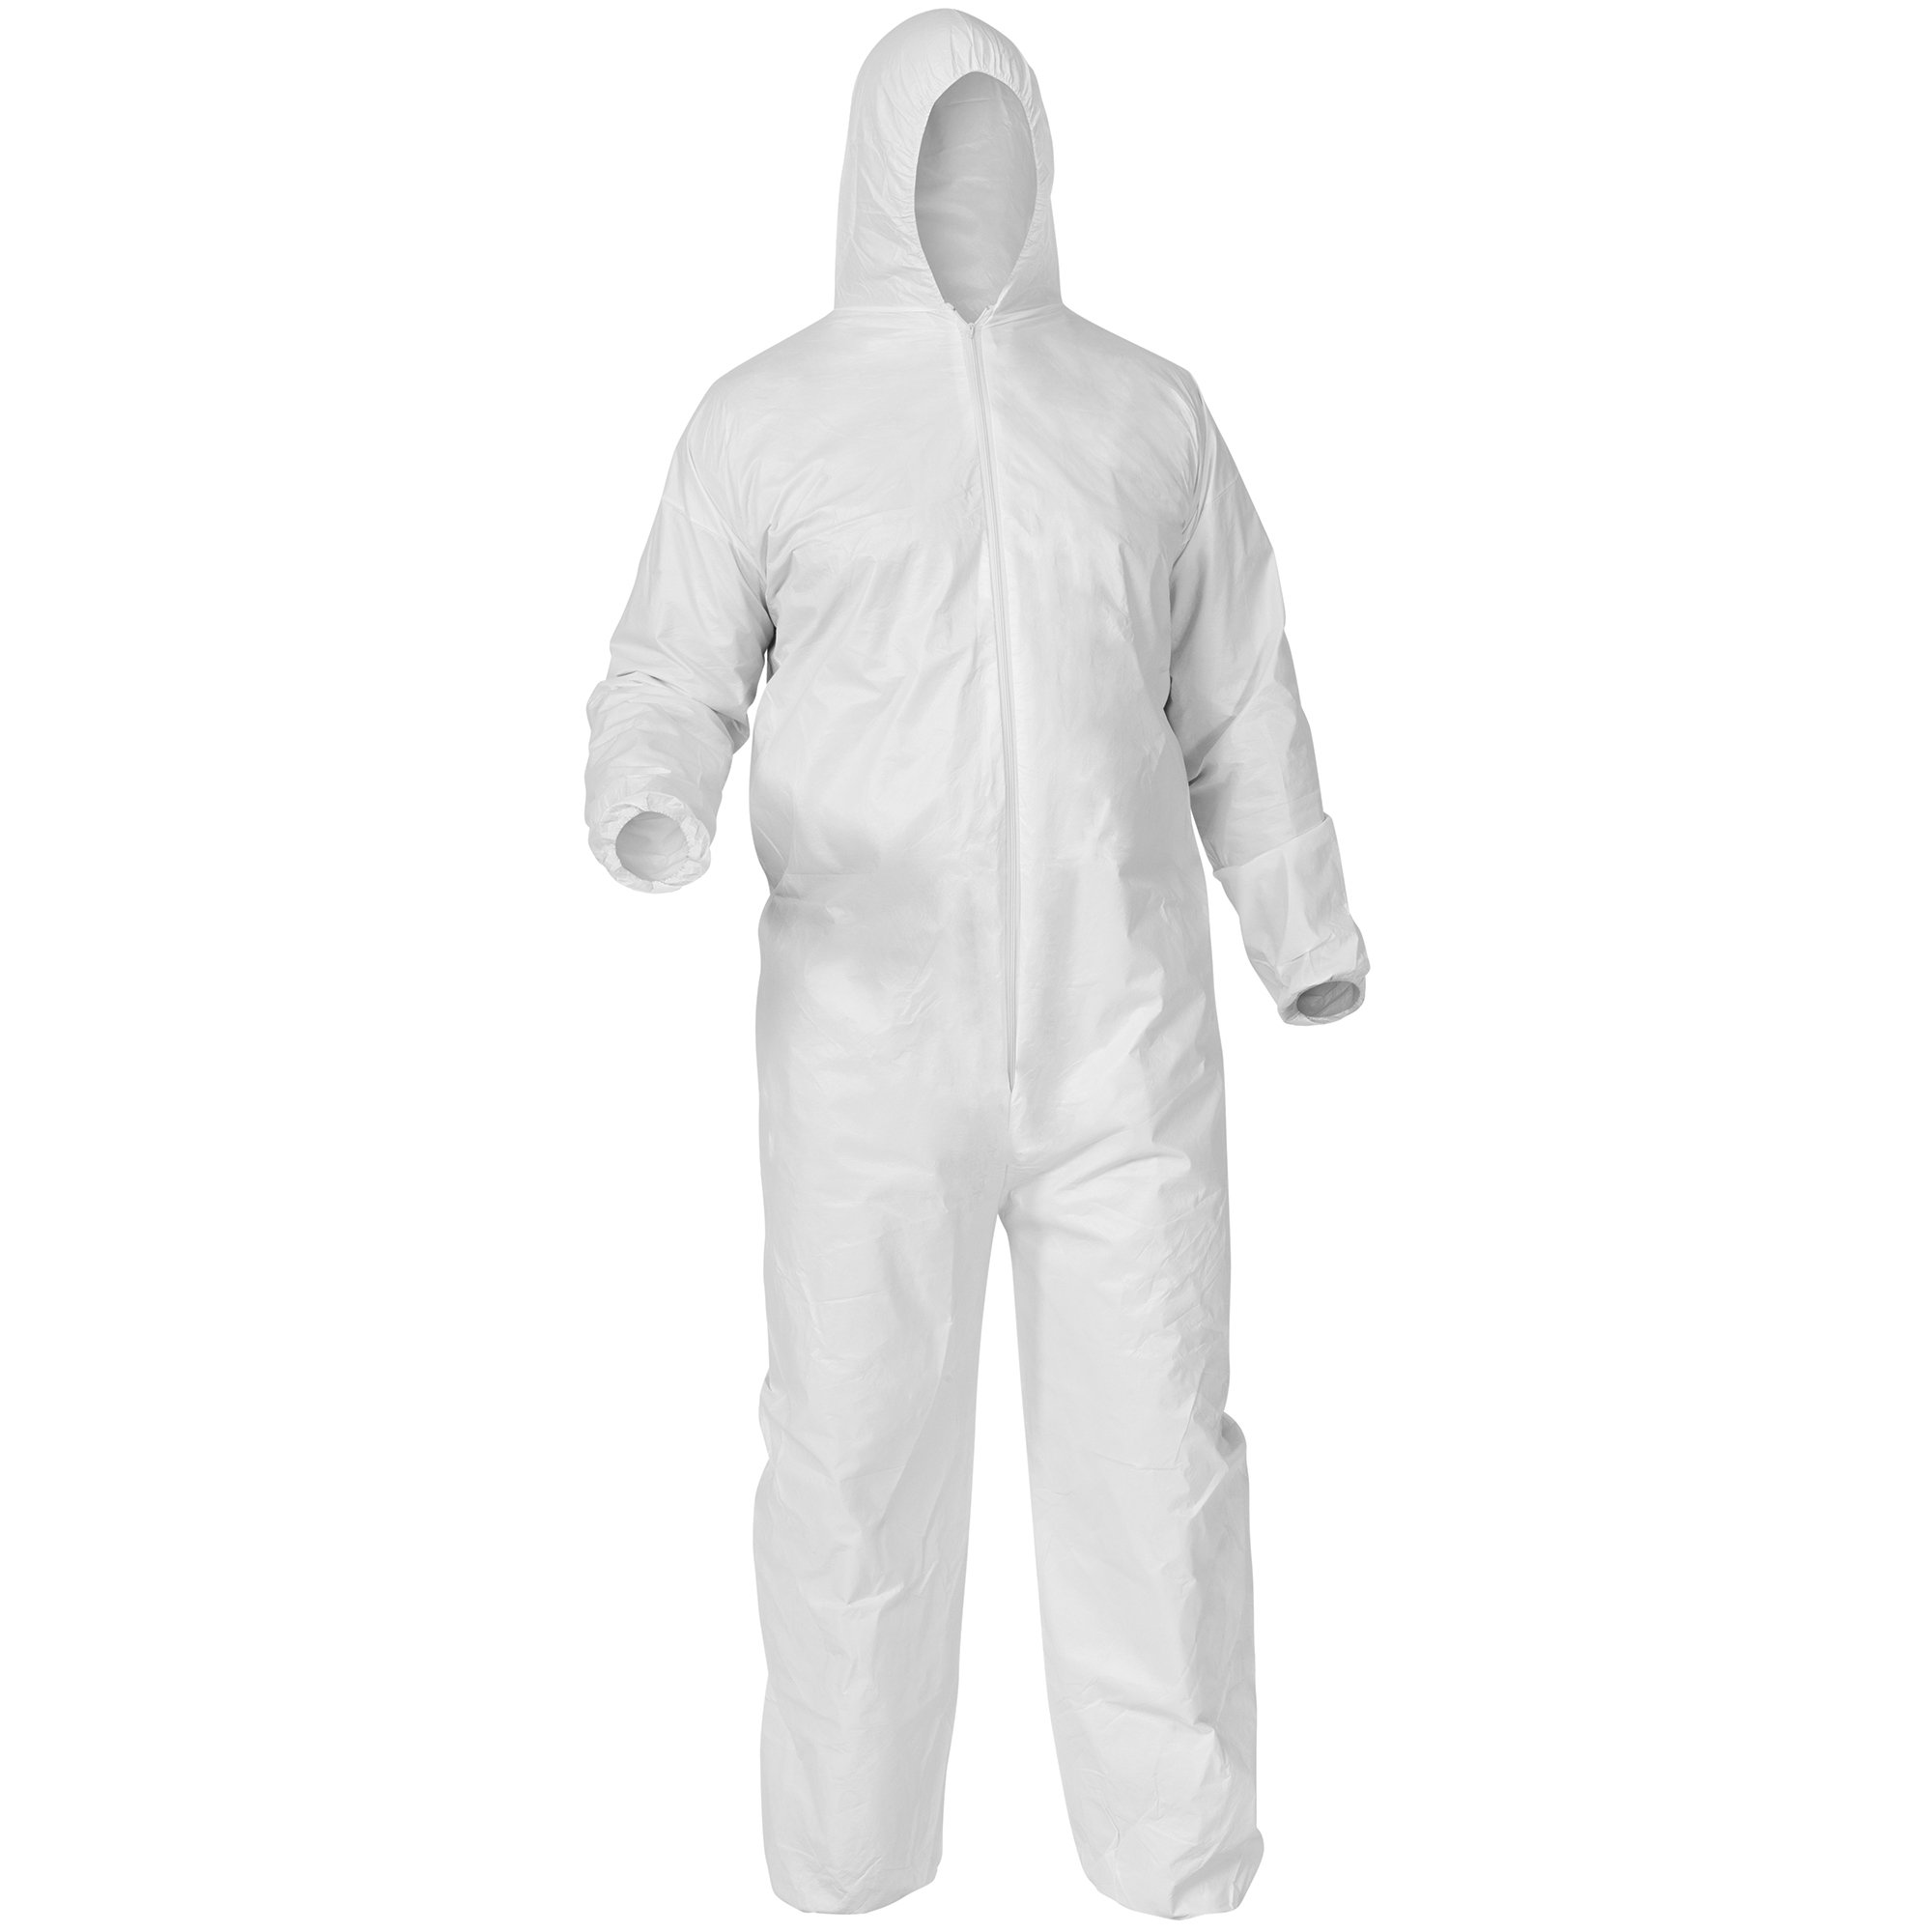 Kleenguard A35 Disposable Coveralls (38941), Liquid and Particle Protection, Hooded, White, 2X-Large (2XL), 25 Garments/Case